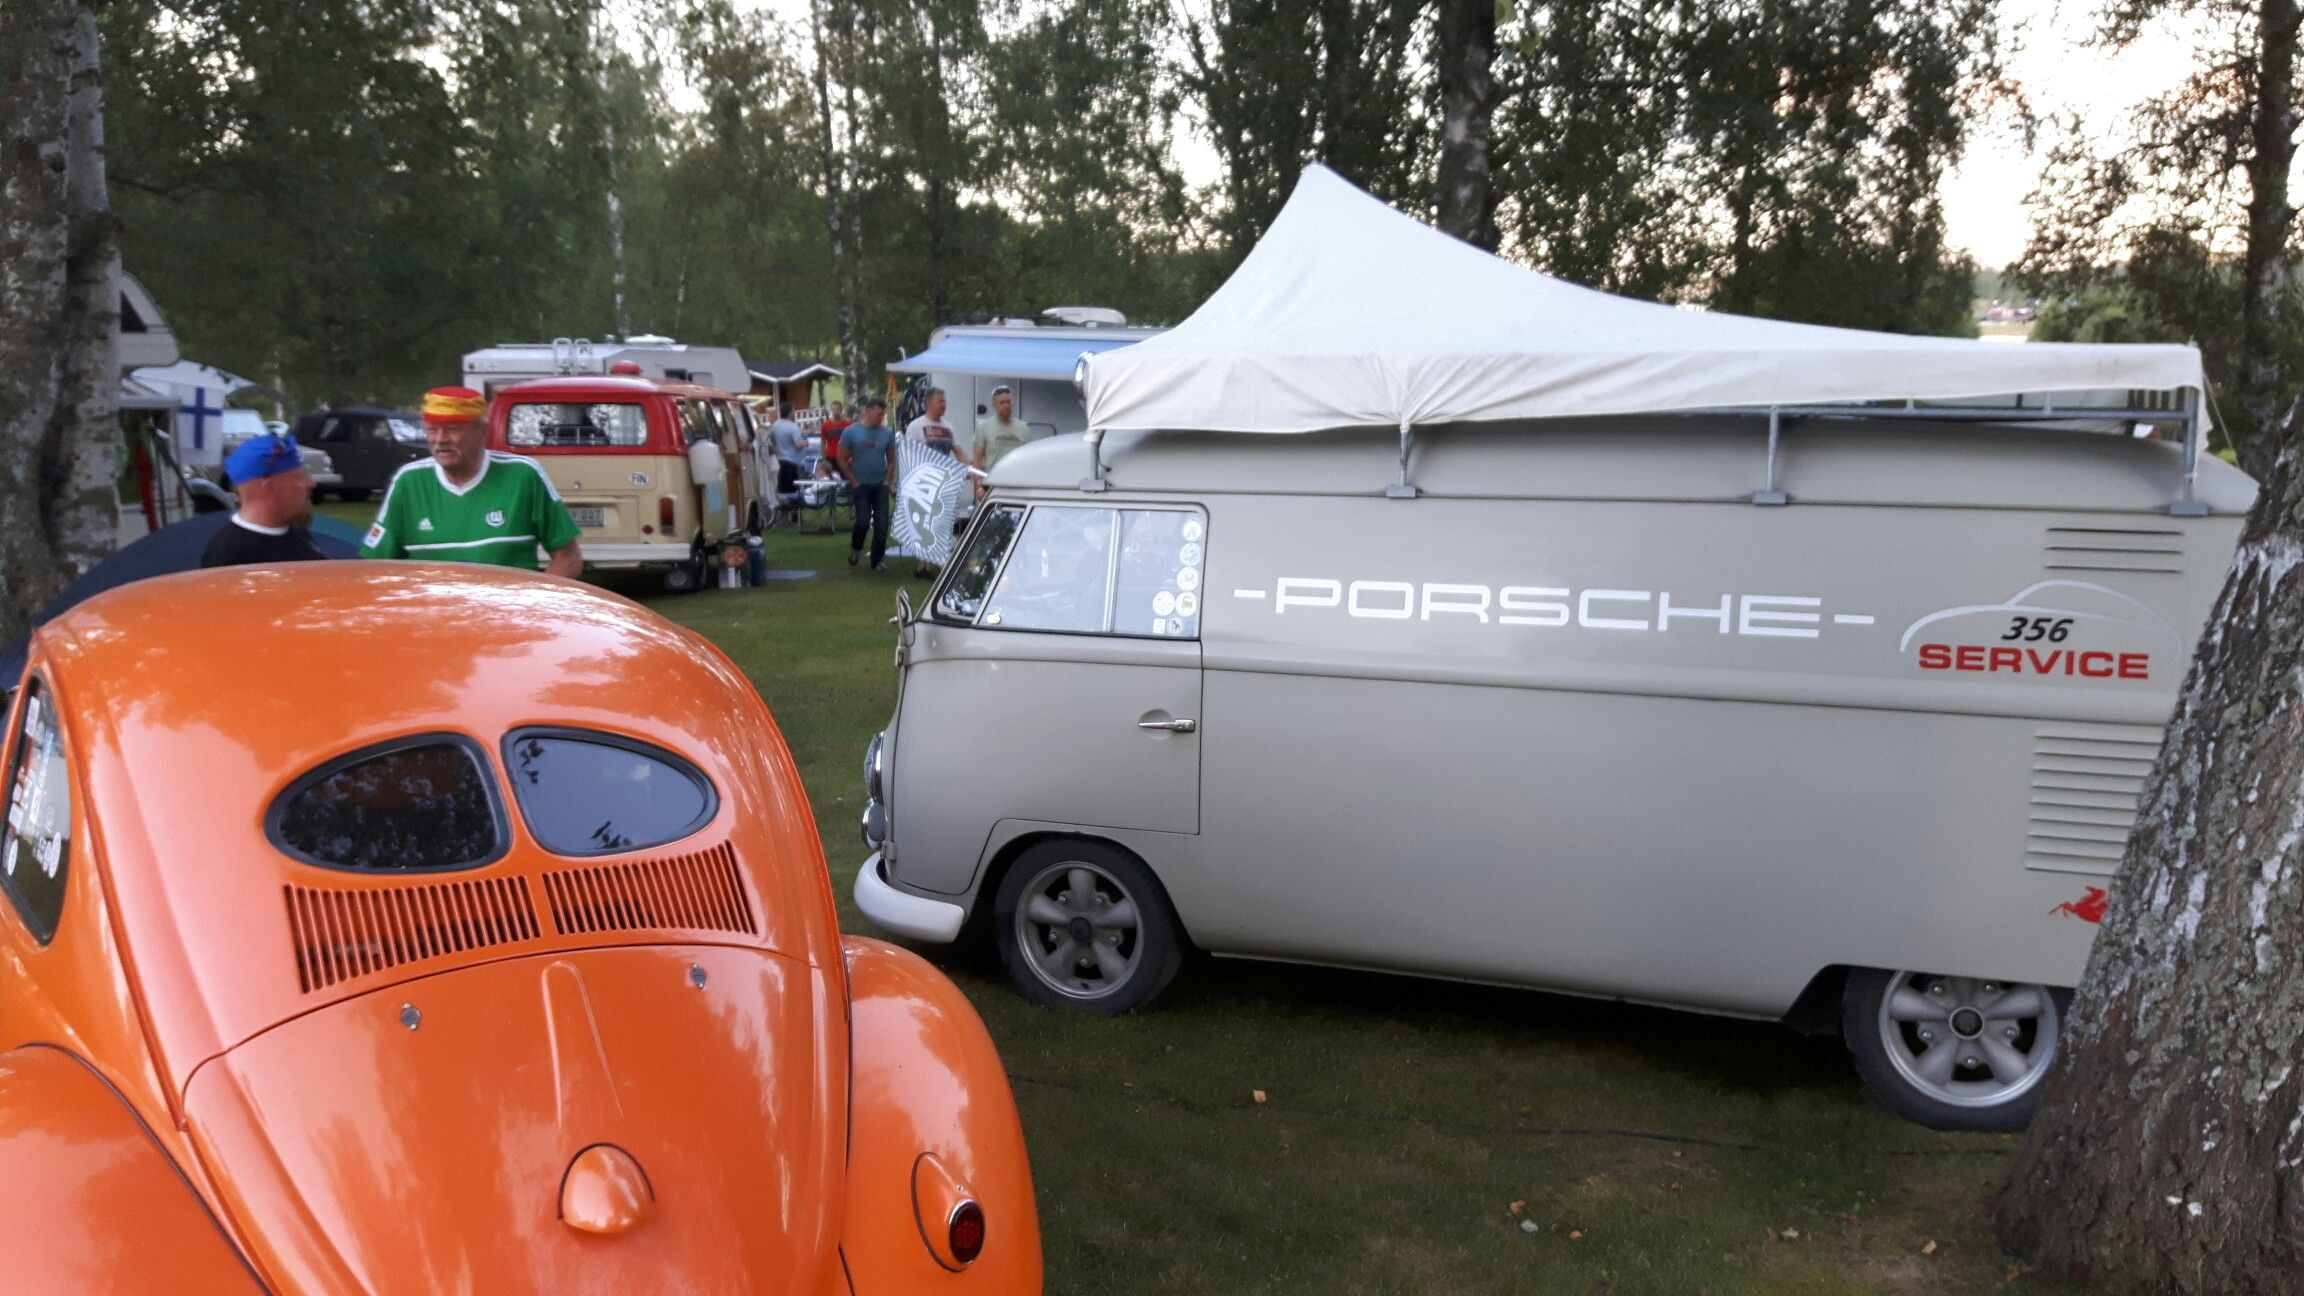 Bug in Fin 2016 VW Beetle and Pirsche Service Type2